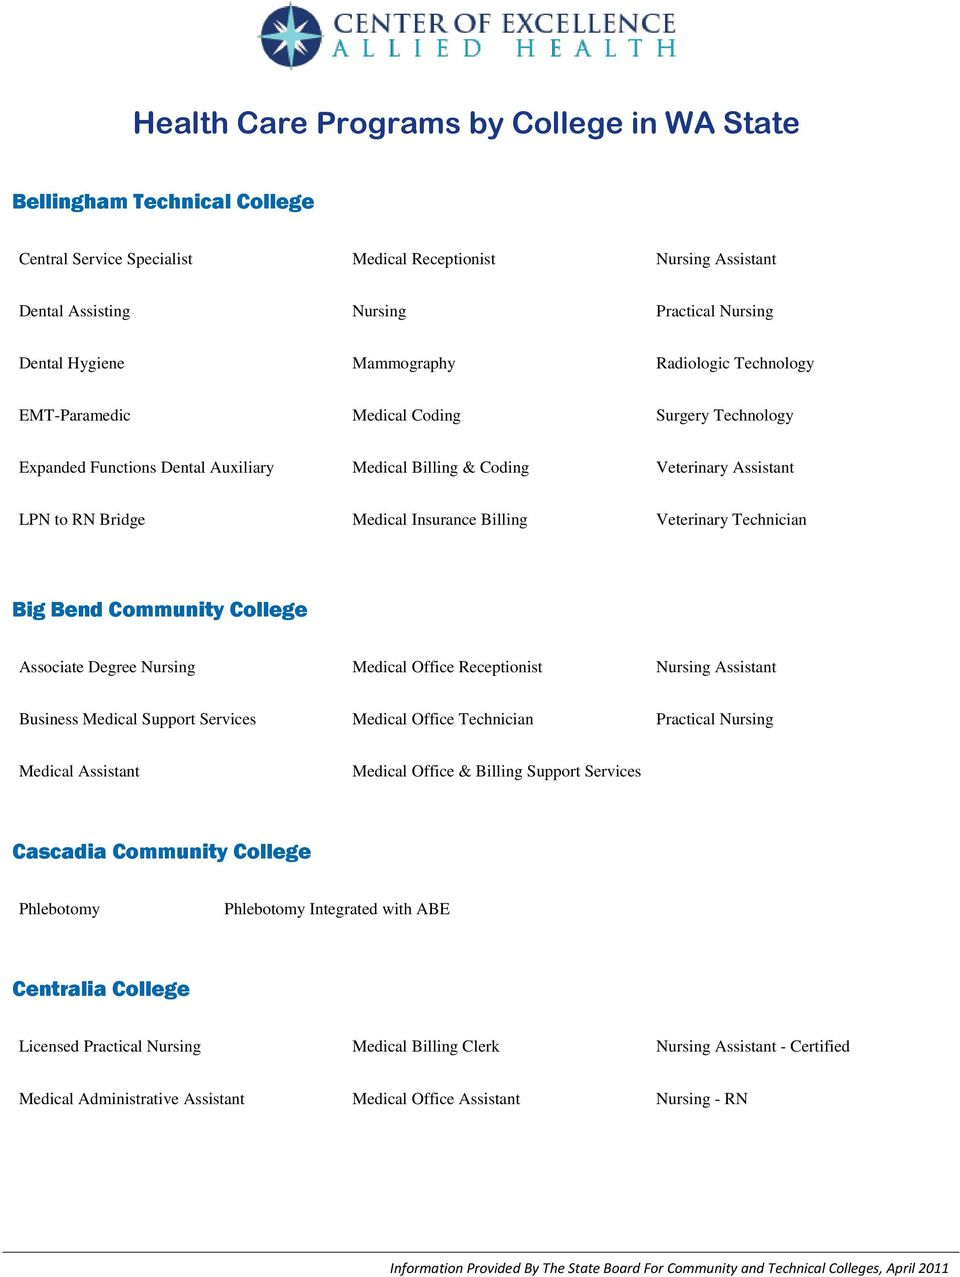 Health Care Programs By College In Wa State Pdf